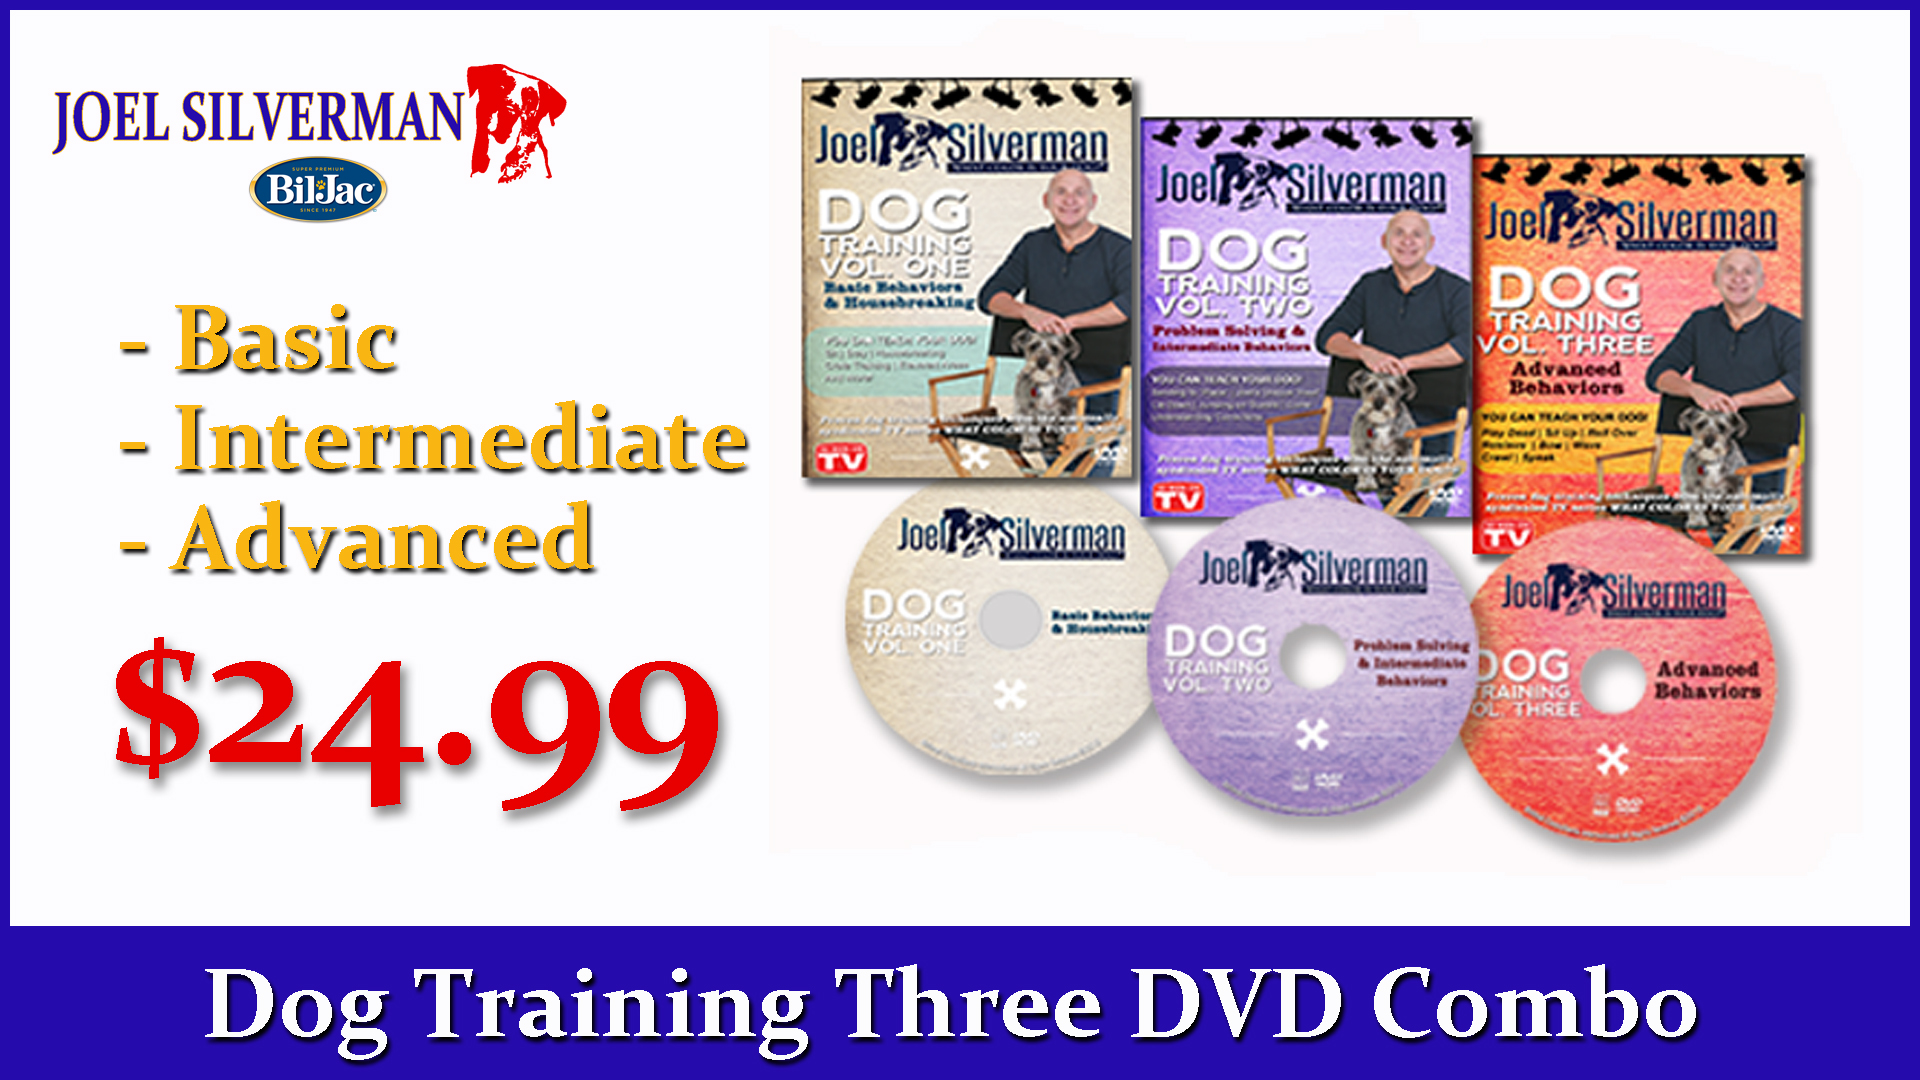 Joel Silvemans Dog Training Dvd Combo